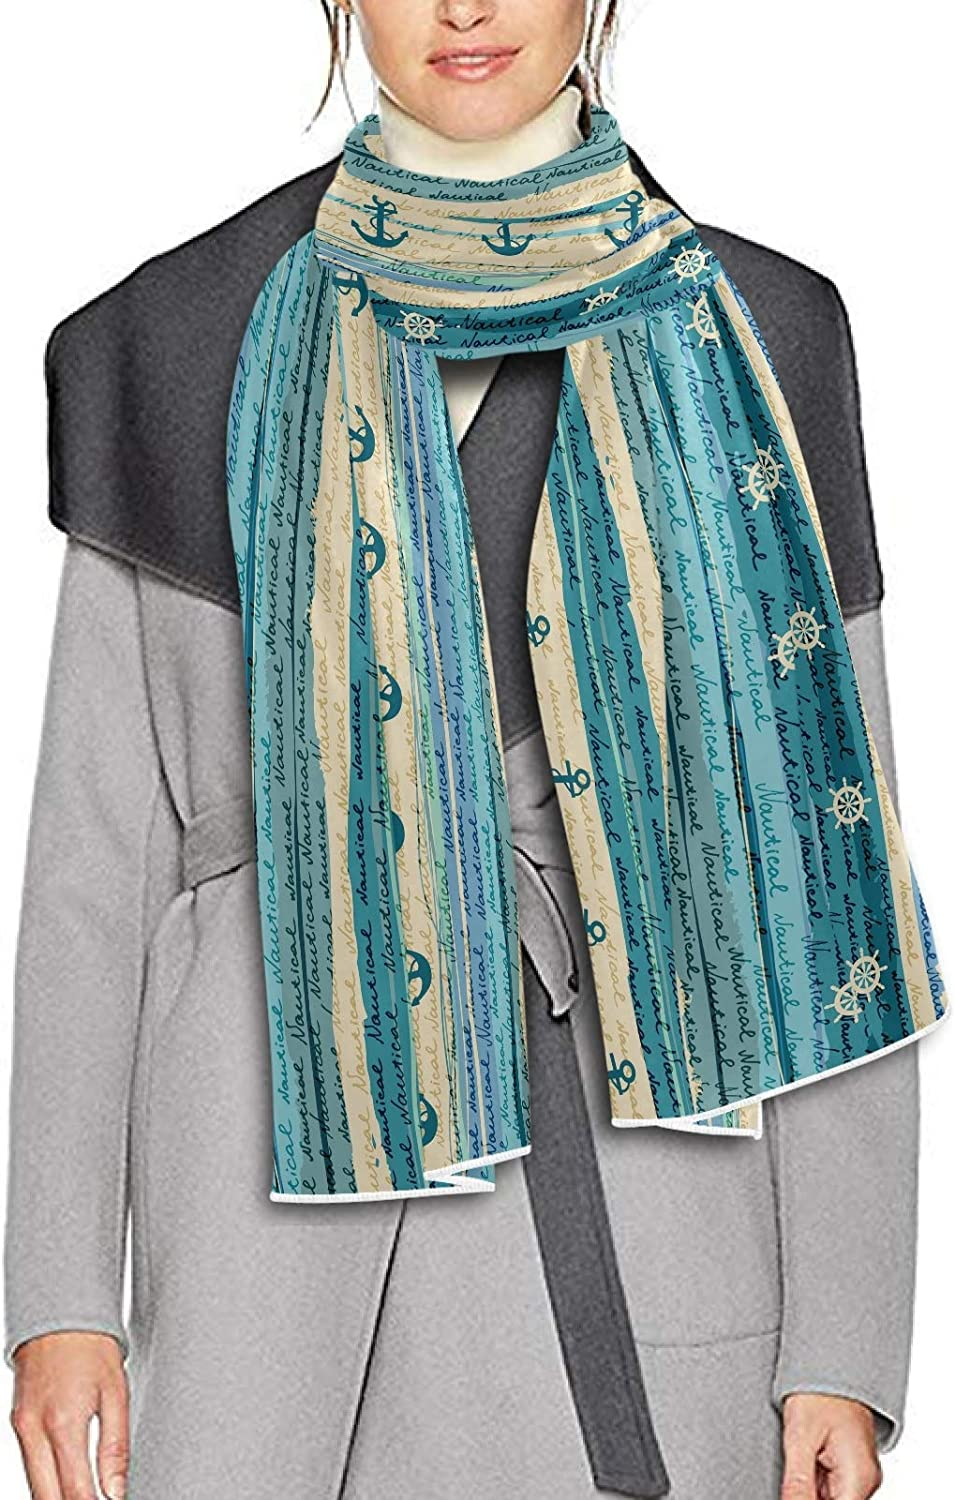 Scarf for Women and Men Nautical Blanket Shawl Scarf wraps Warm soft Winter Oversized Scarves Lightweight